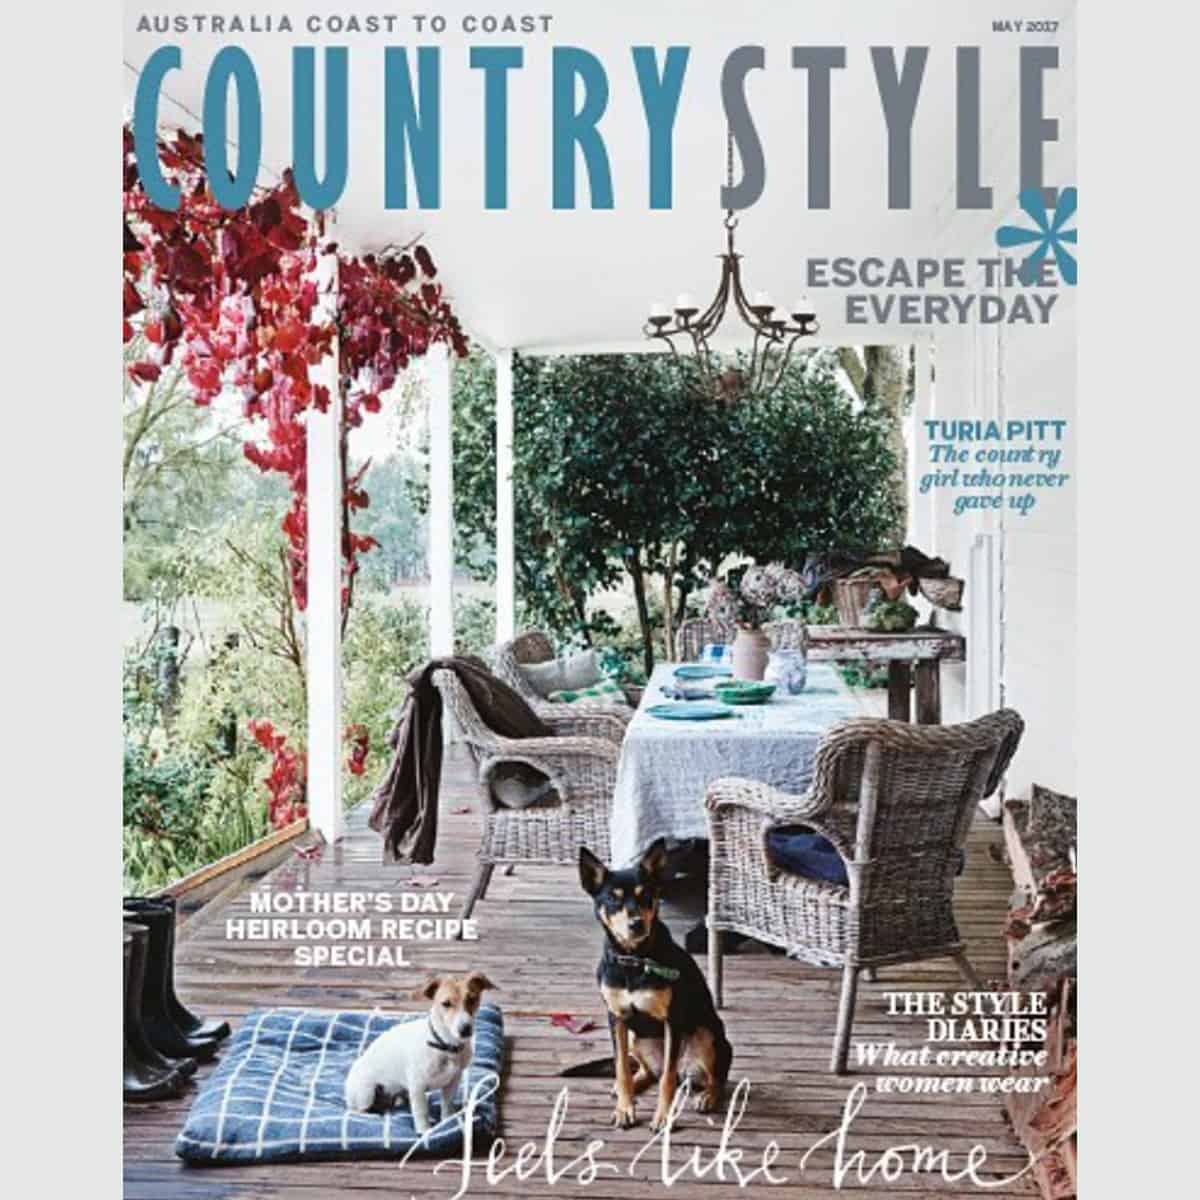 Country Style feature magazine May 2017 Heatherly home